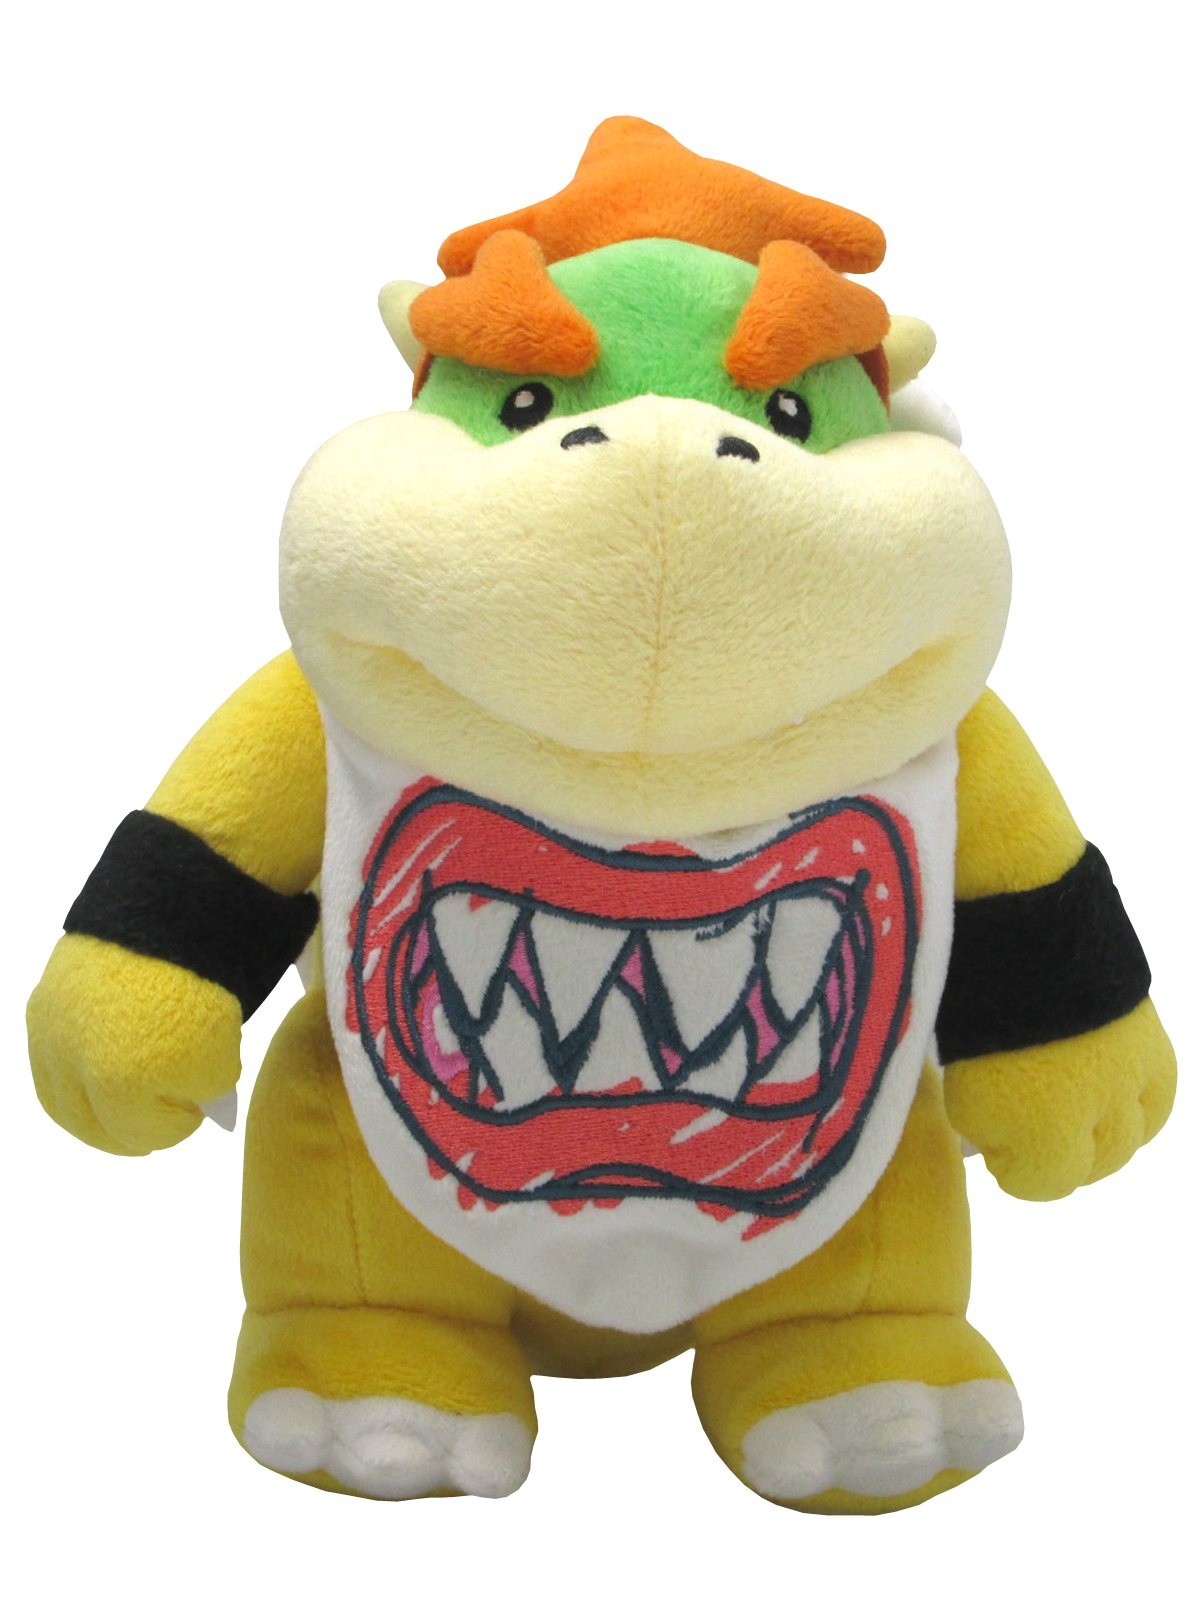 Sanei Super Mario All Star Collection 8'' Bowser Jr. Plush, Small by Sanei